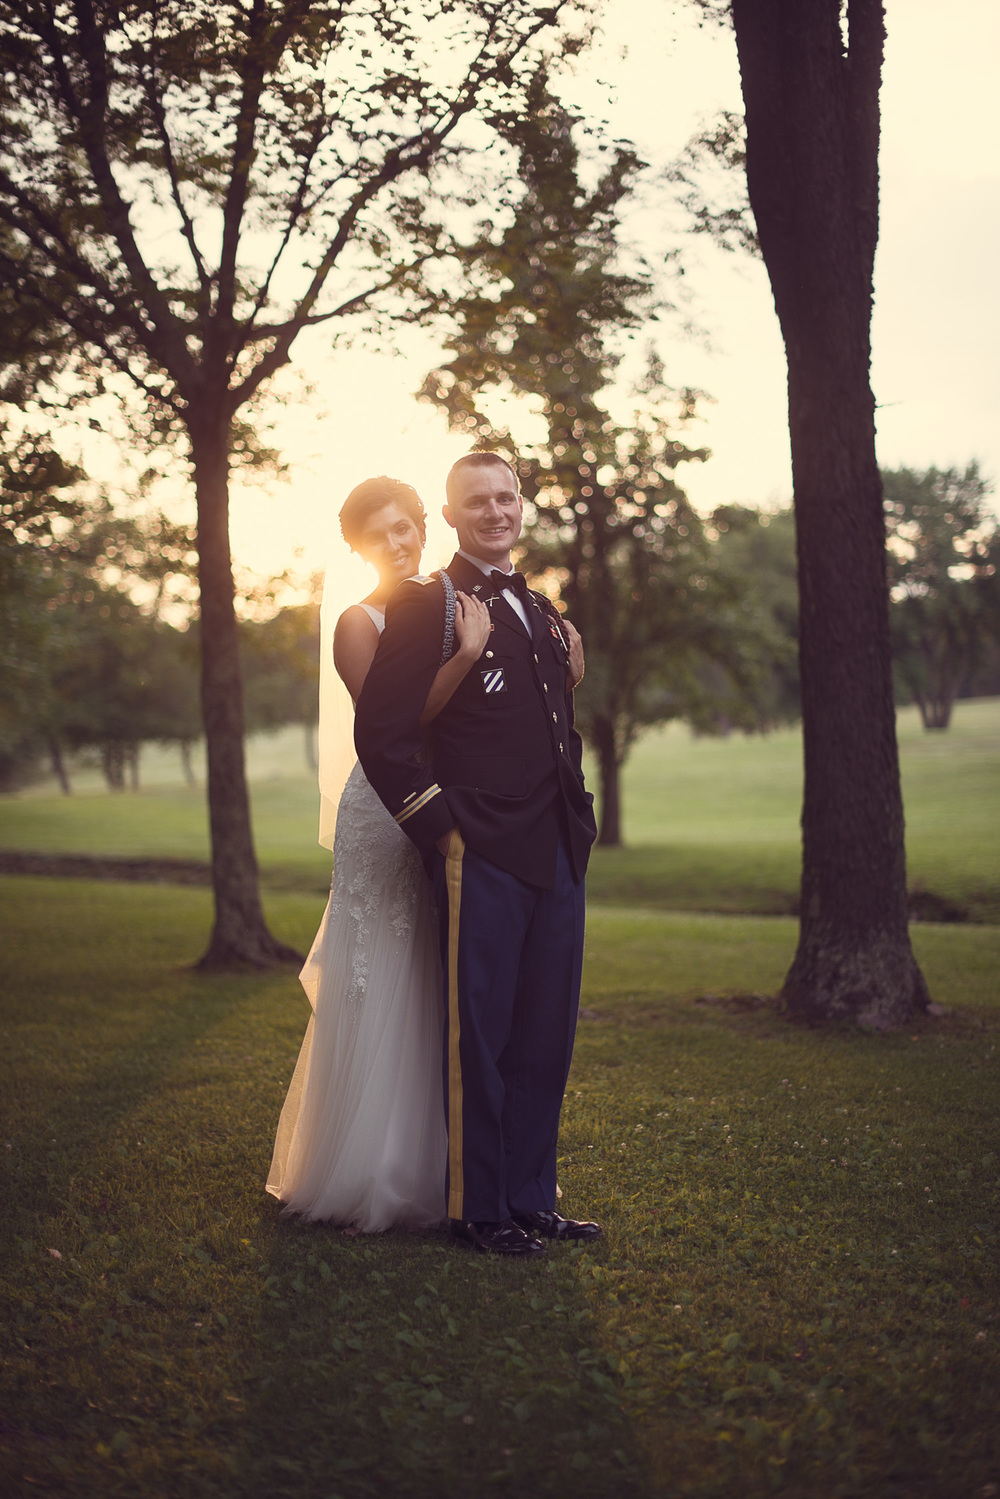 wedding bride groom army sun flare husband wife marriage sunset portrait THPHOTO